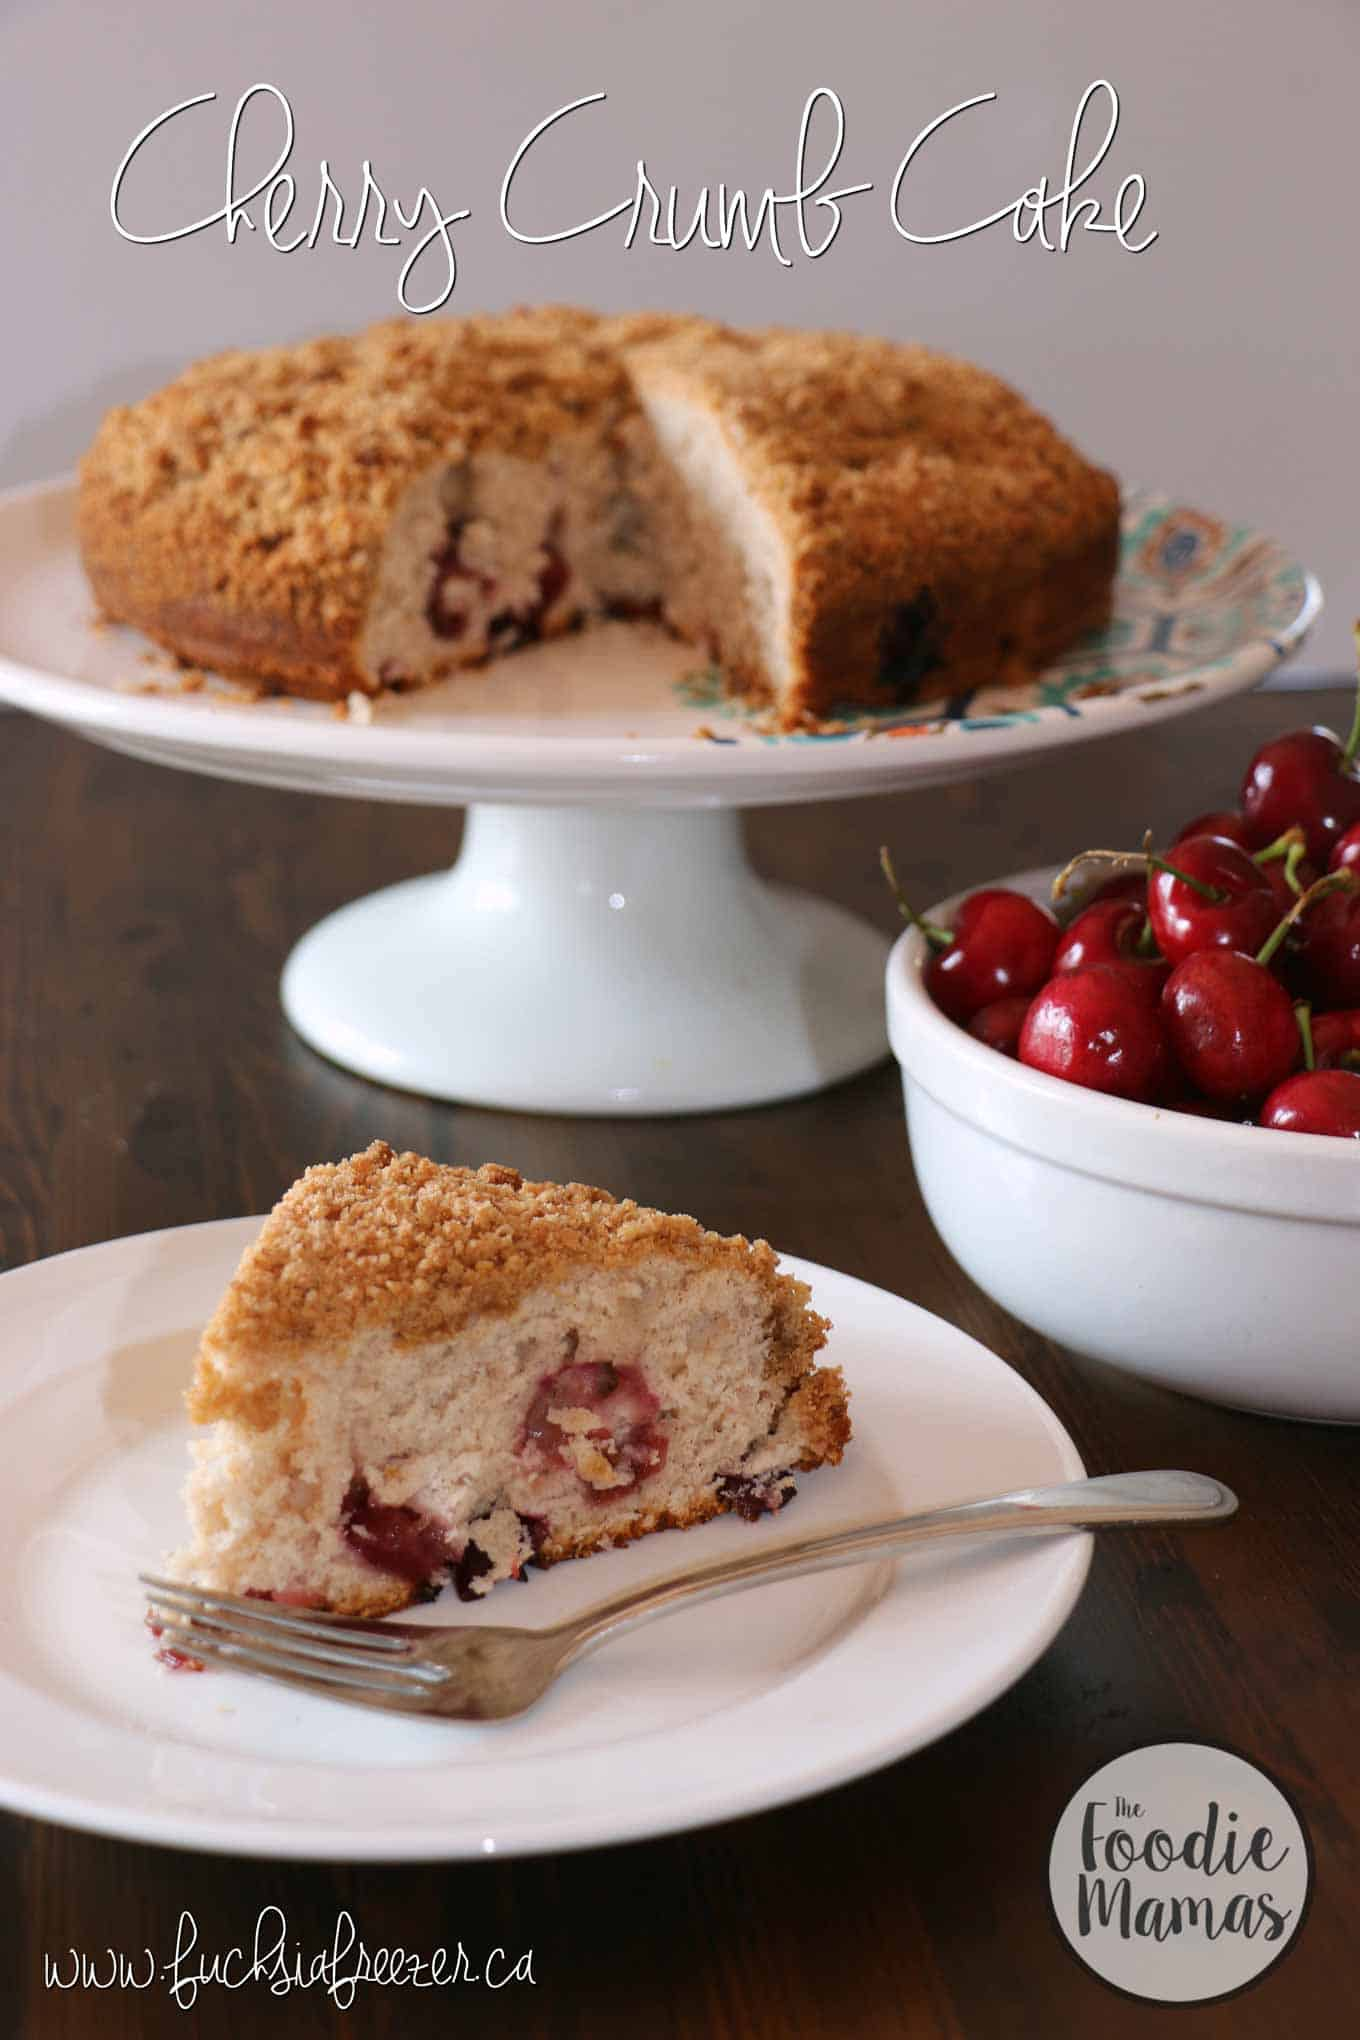 Cherry crumb cake + 8 more delicious cherry recipes from The Foodiemamas!